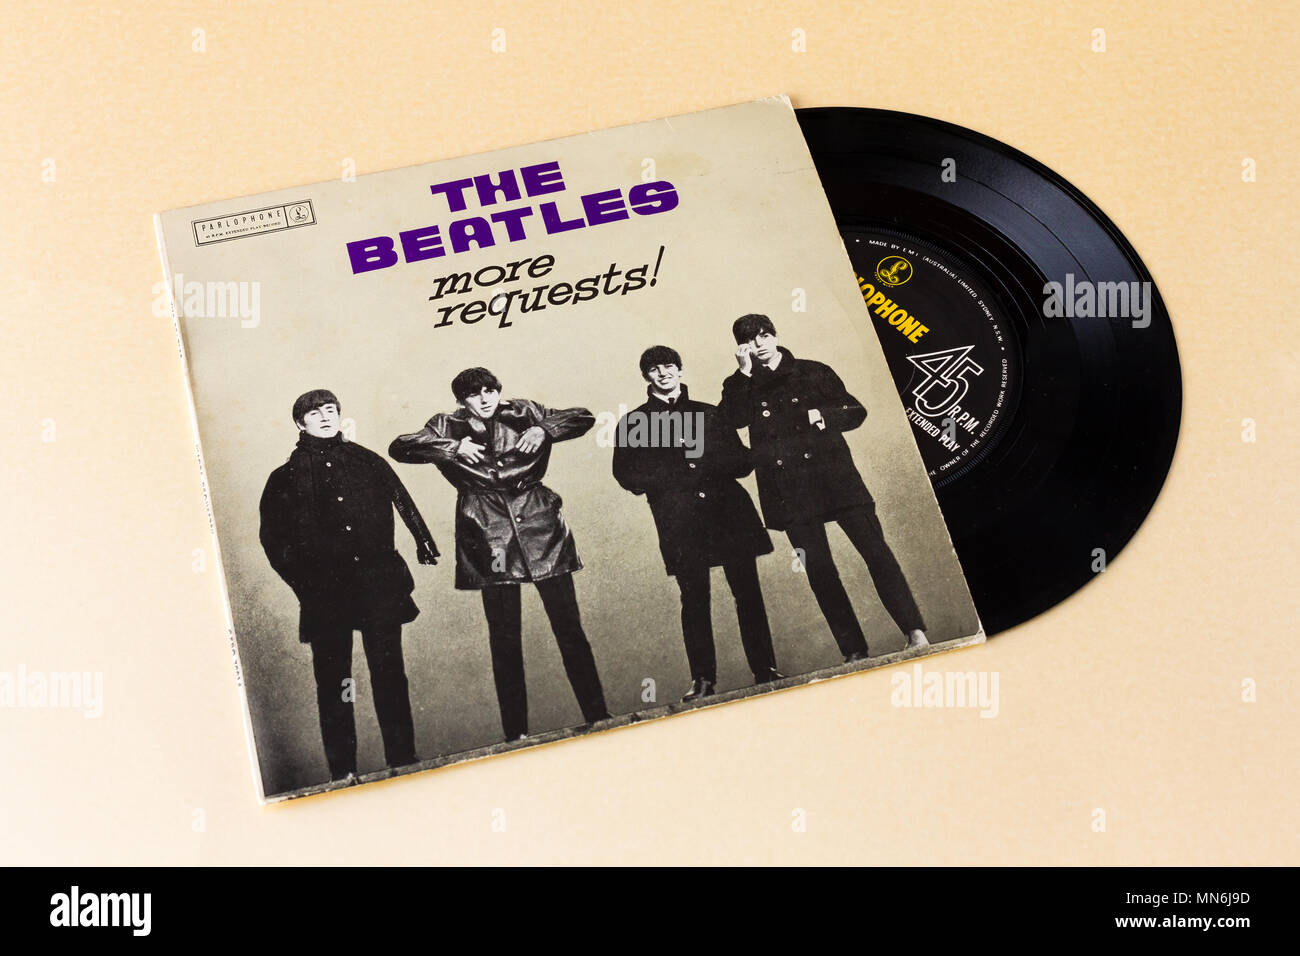 records vinyl beatles stock photos records vinyl beatles stock images alamy. Black Bedroom Furniture Sets. Home Design Ideas